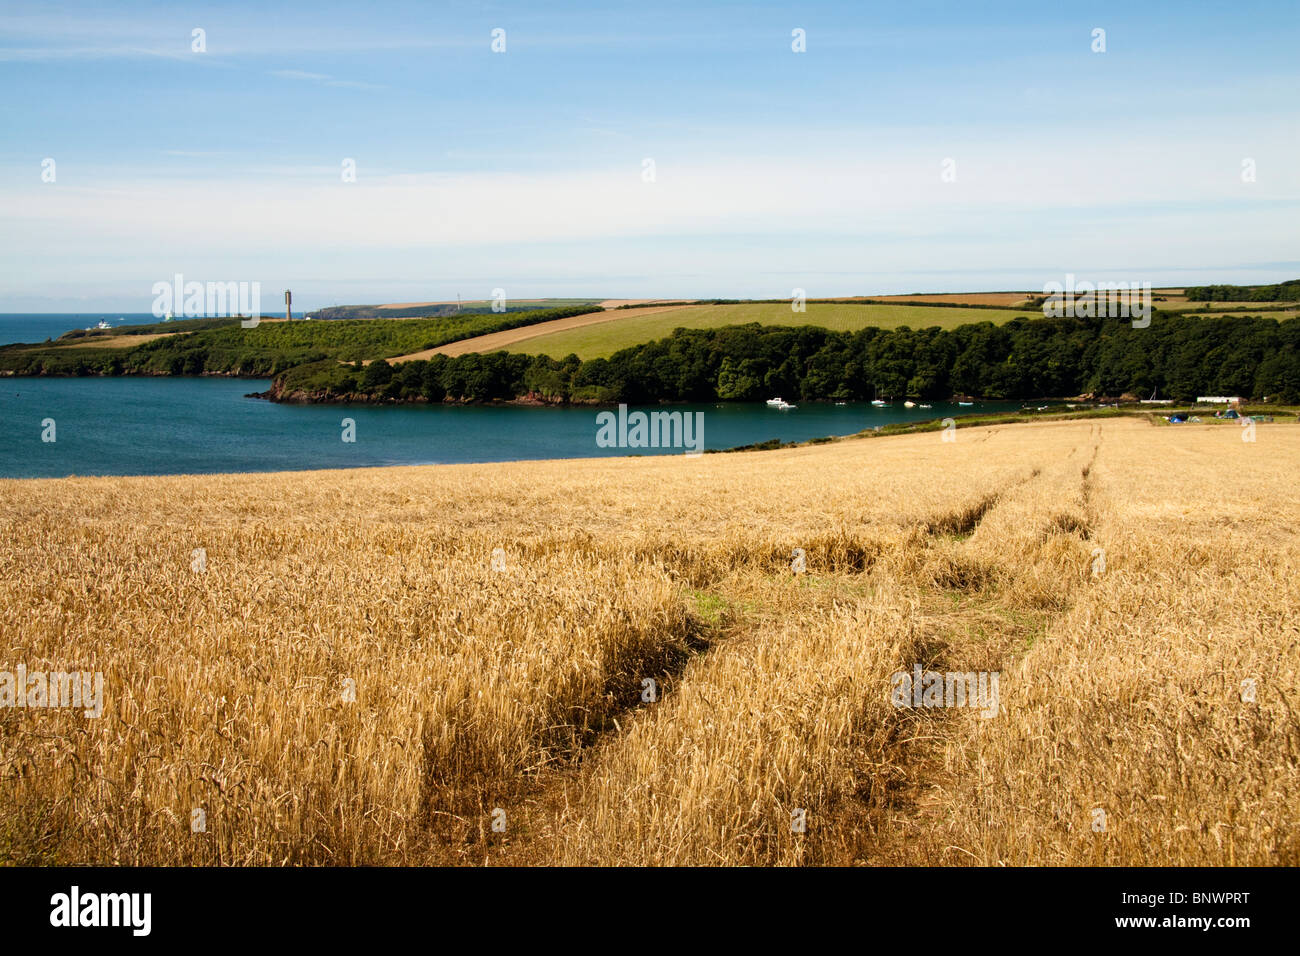 View of a wheat field overlooking Sandy Haven, Pembrokeshire, Wales, UK - Stock Image